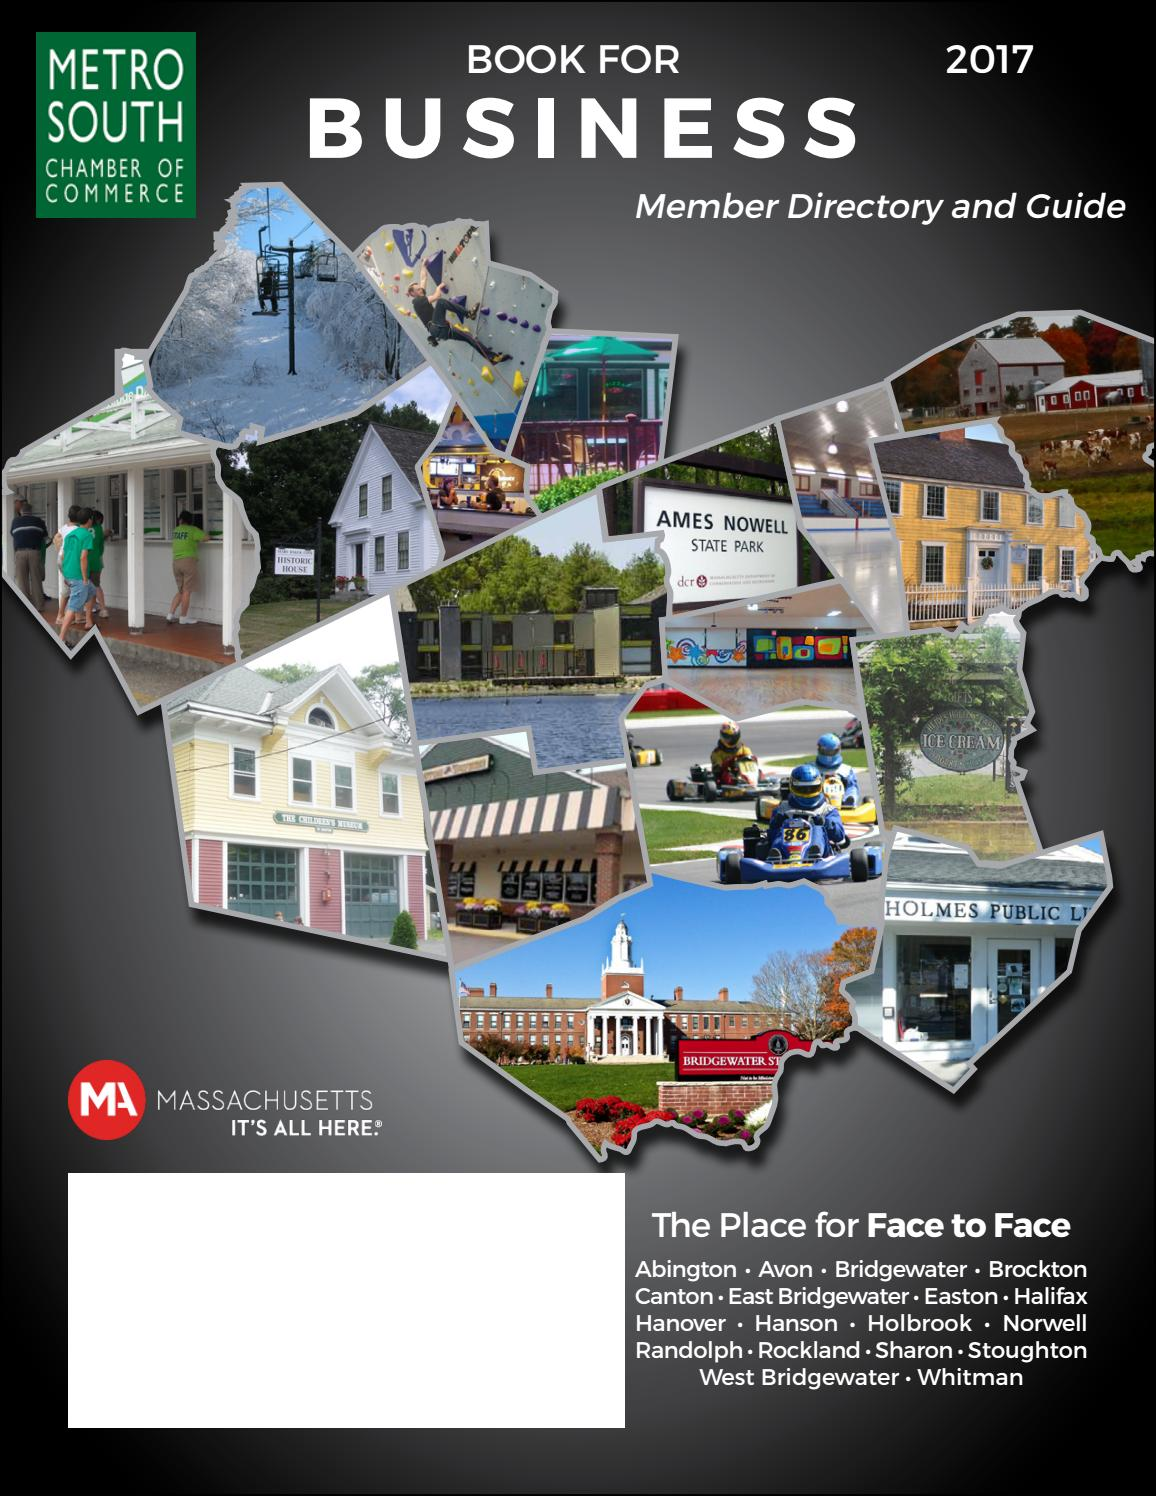 2017 Book for Business by Metro South Chamber of Commerce